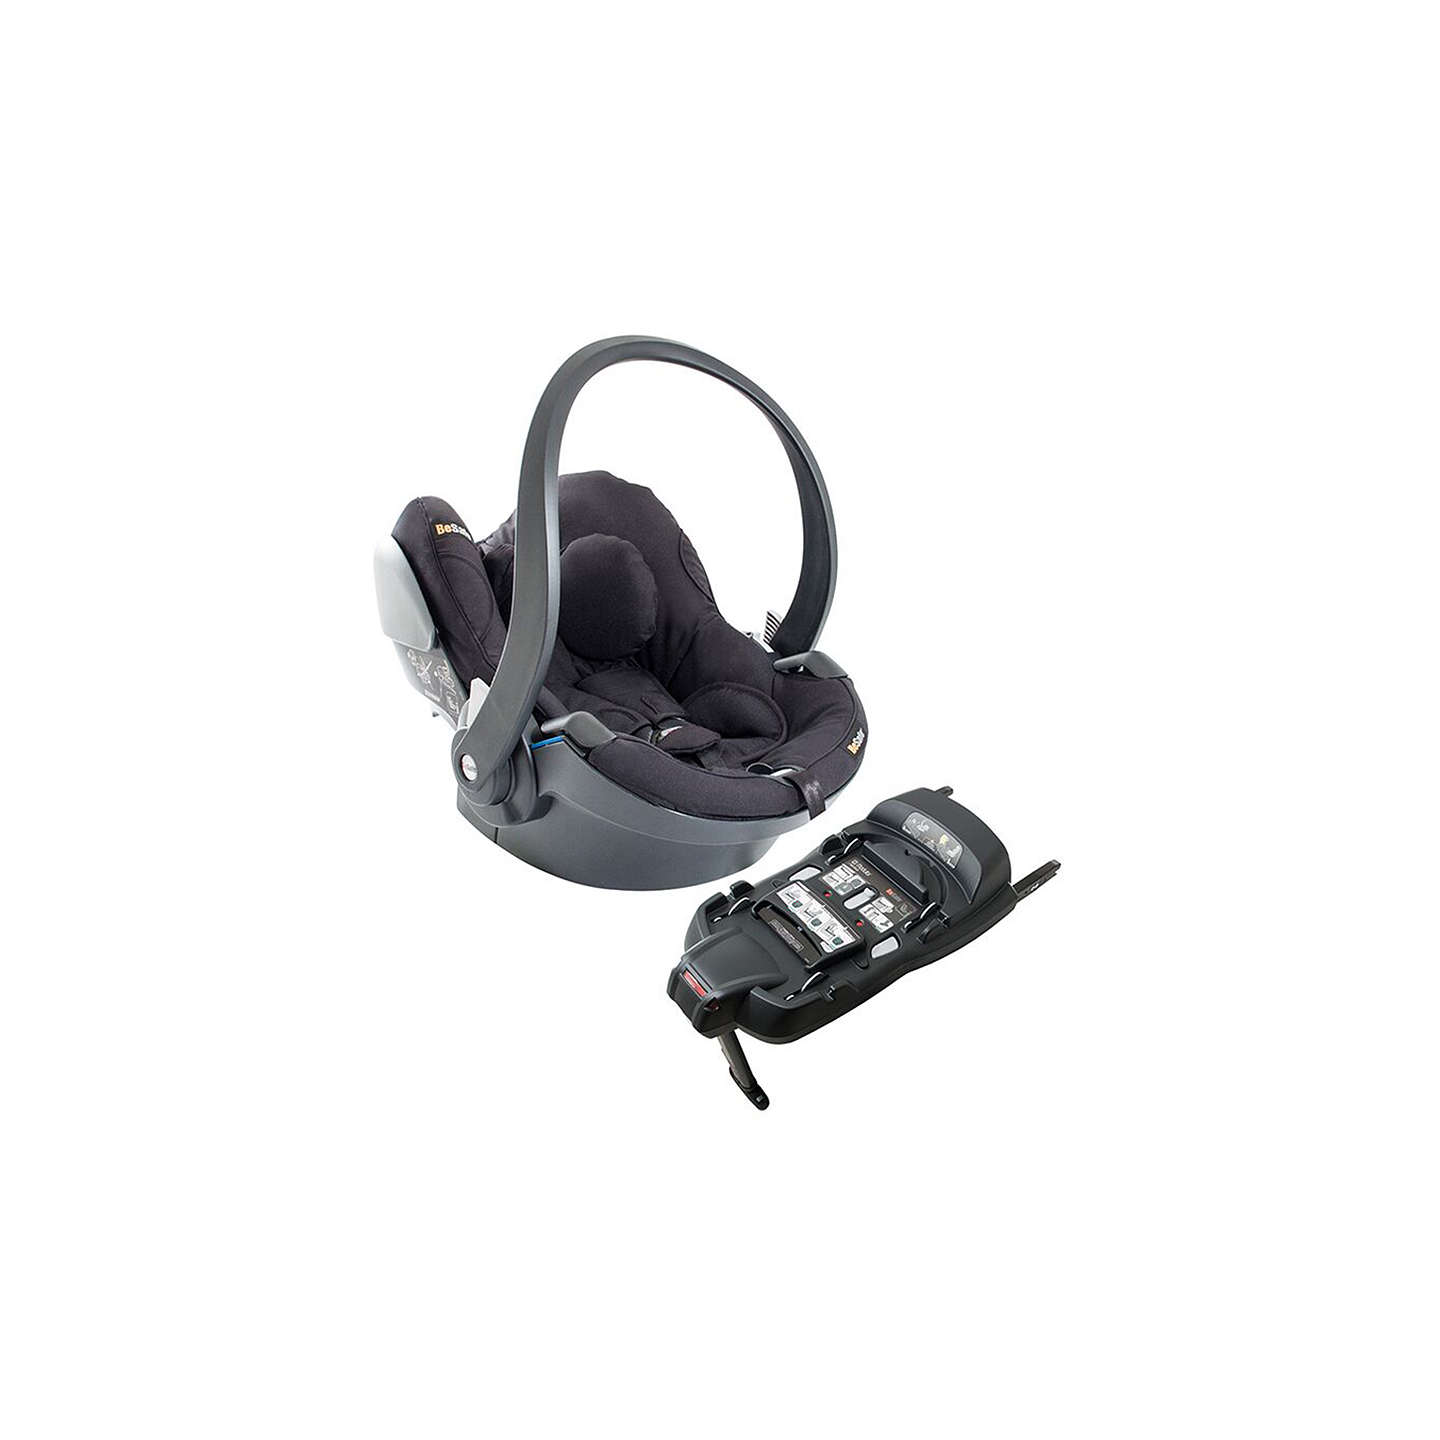 BuyBeSafe iZi Go Modular i-Size Group 0+ Baby Car Seat, Black Cab Online at johnlewis.com